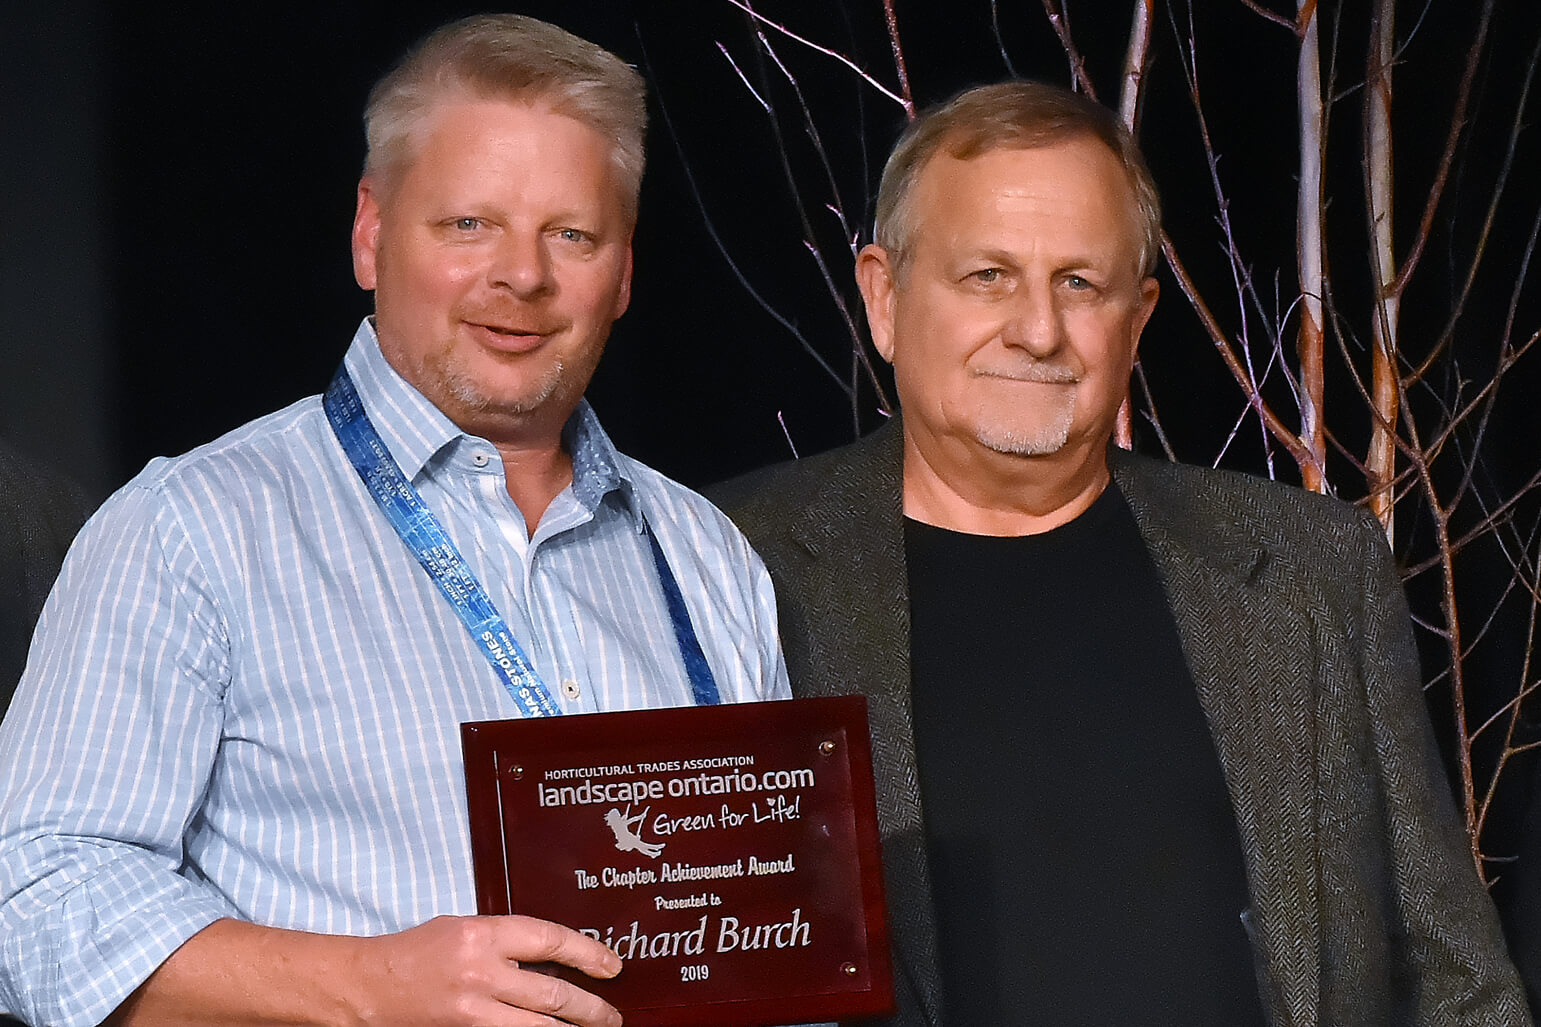 richard burch, recipient of the 2019 Chapter achievement award, with Phil Dickie